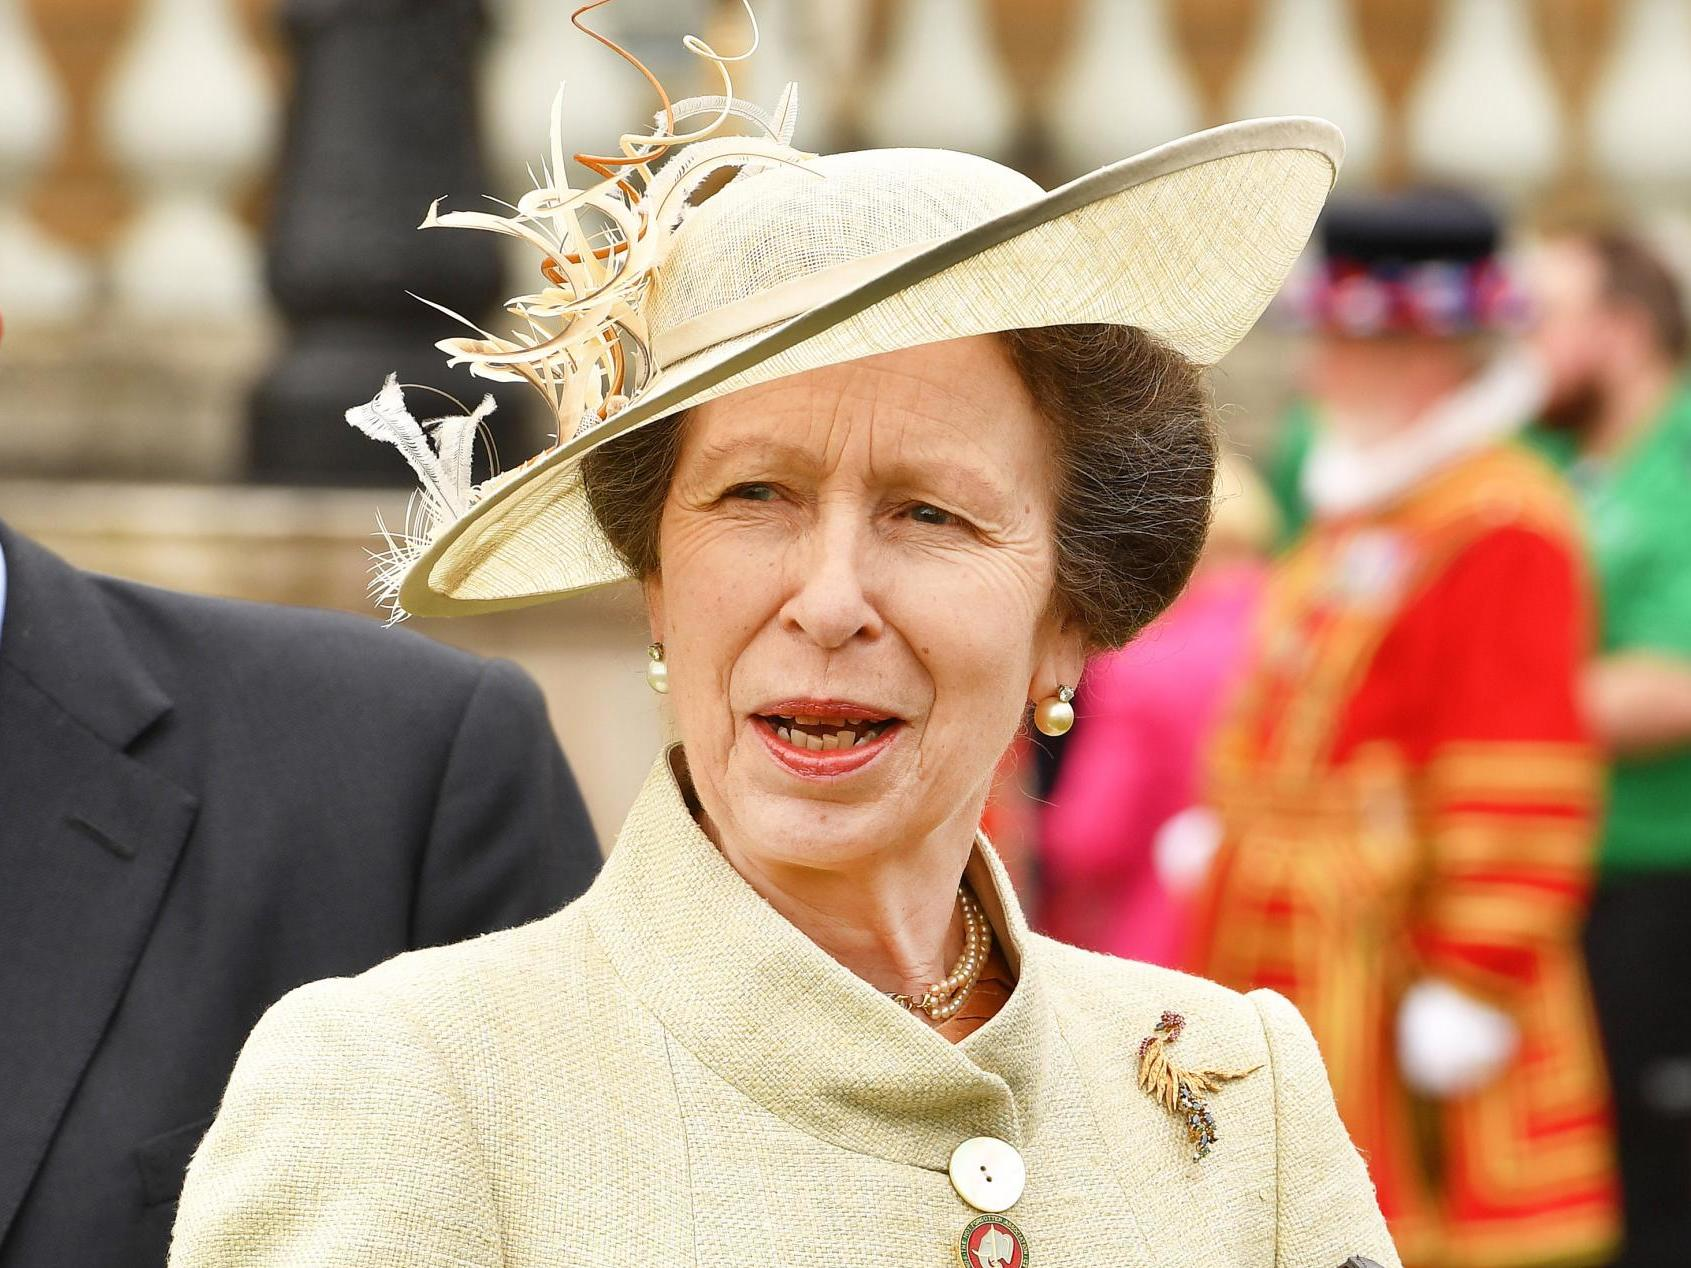 Royal family wishes Princess Anne happy birthday as Queen's daughter turns 70